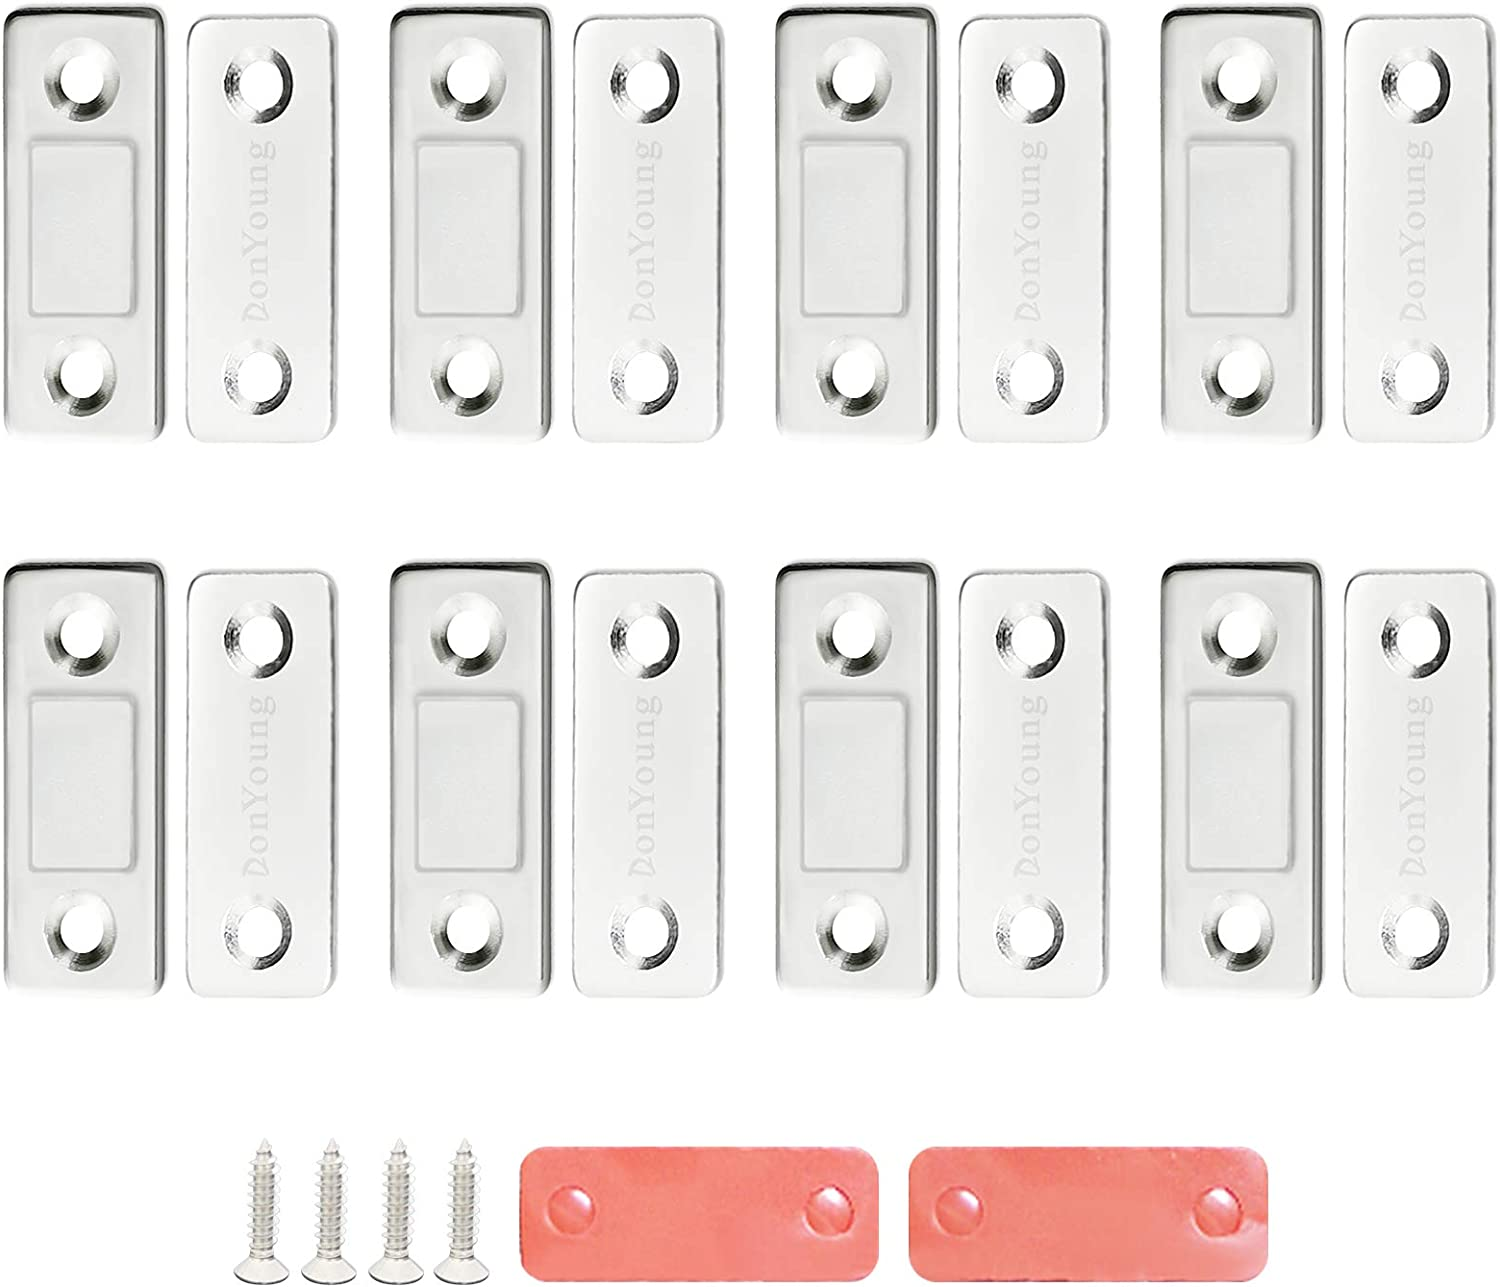 DonYoung Magnetic Door Catch, 8 Pack Ultra Thin Cabinet Magnetic Catch with Strong Adhesive Sticker Slim Drawer Magnets Locks Furniture Safety Latches for Kitchen Cupboard Closet Sliding Door Closure